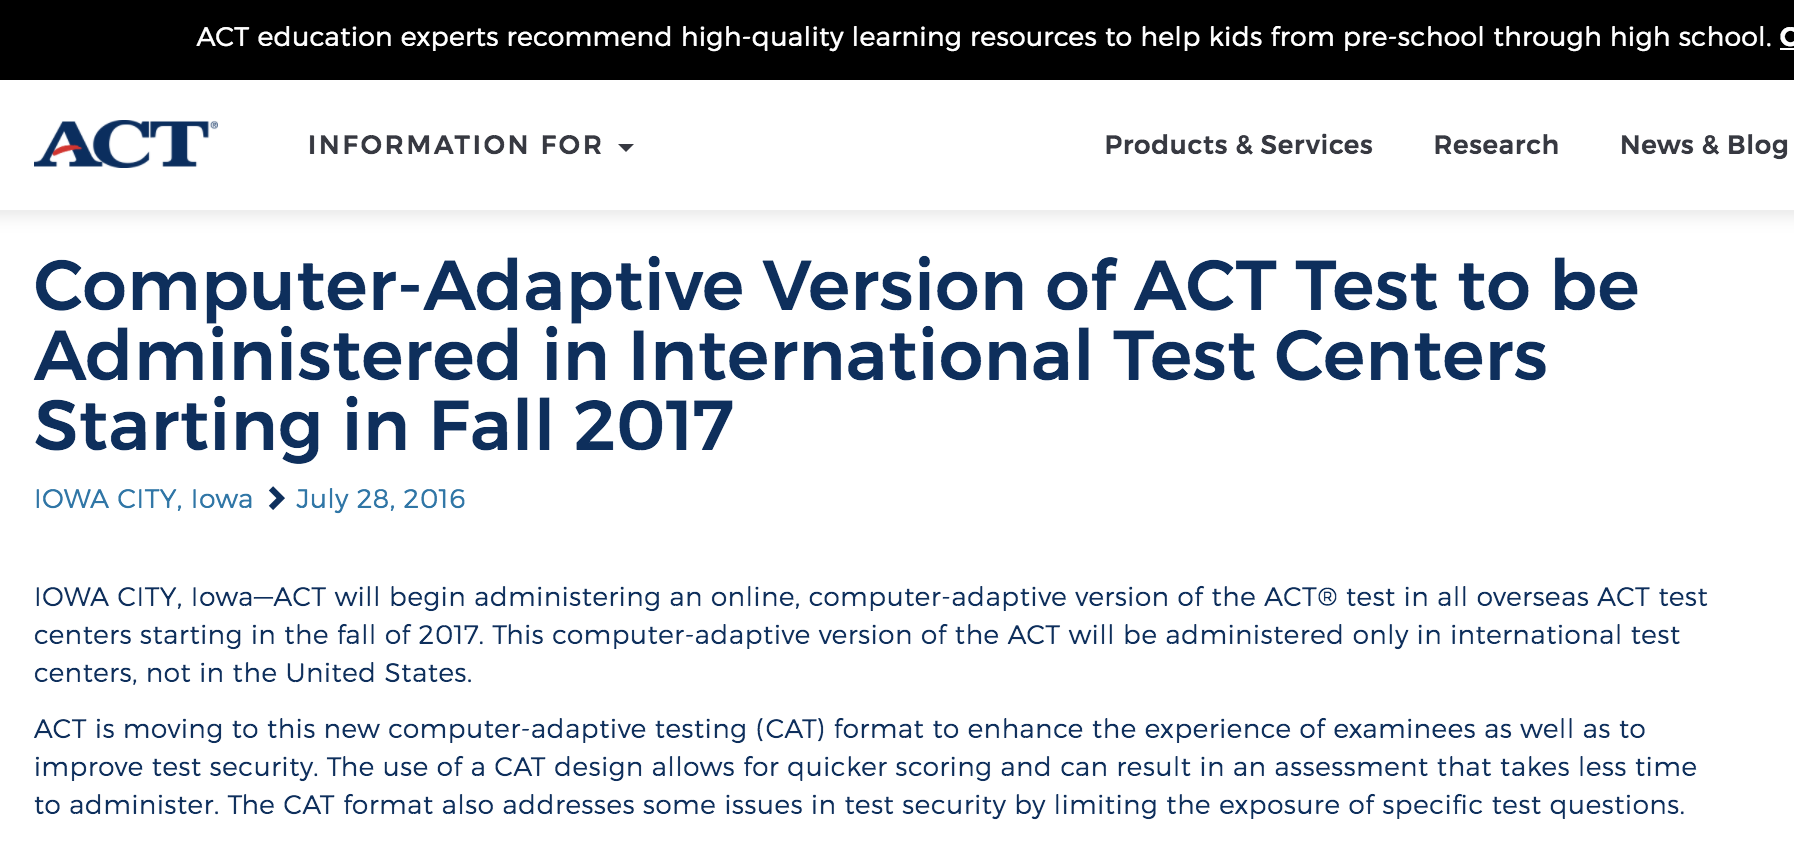 ACT July 2016 Press Release